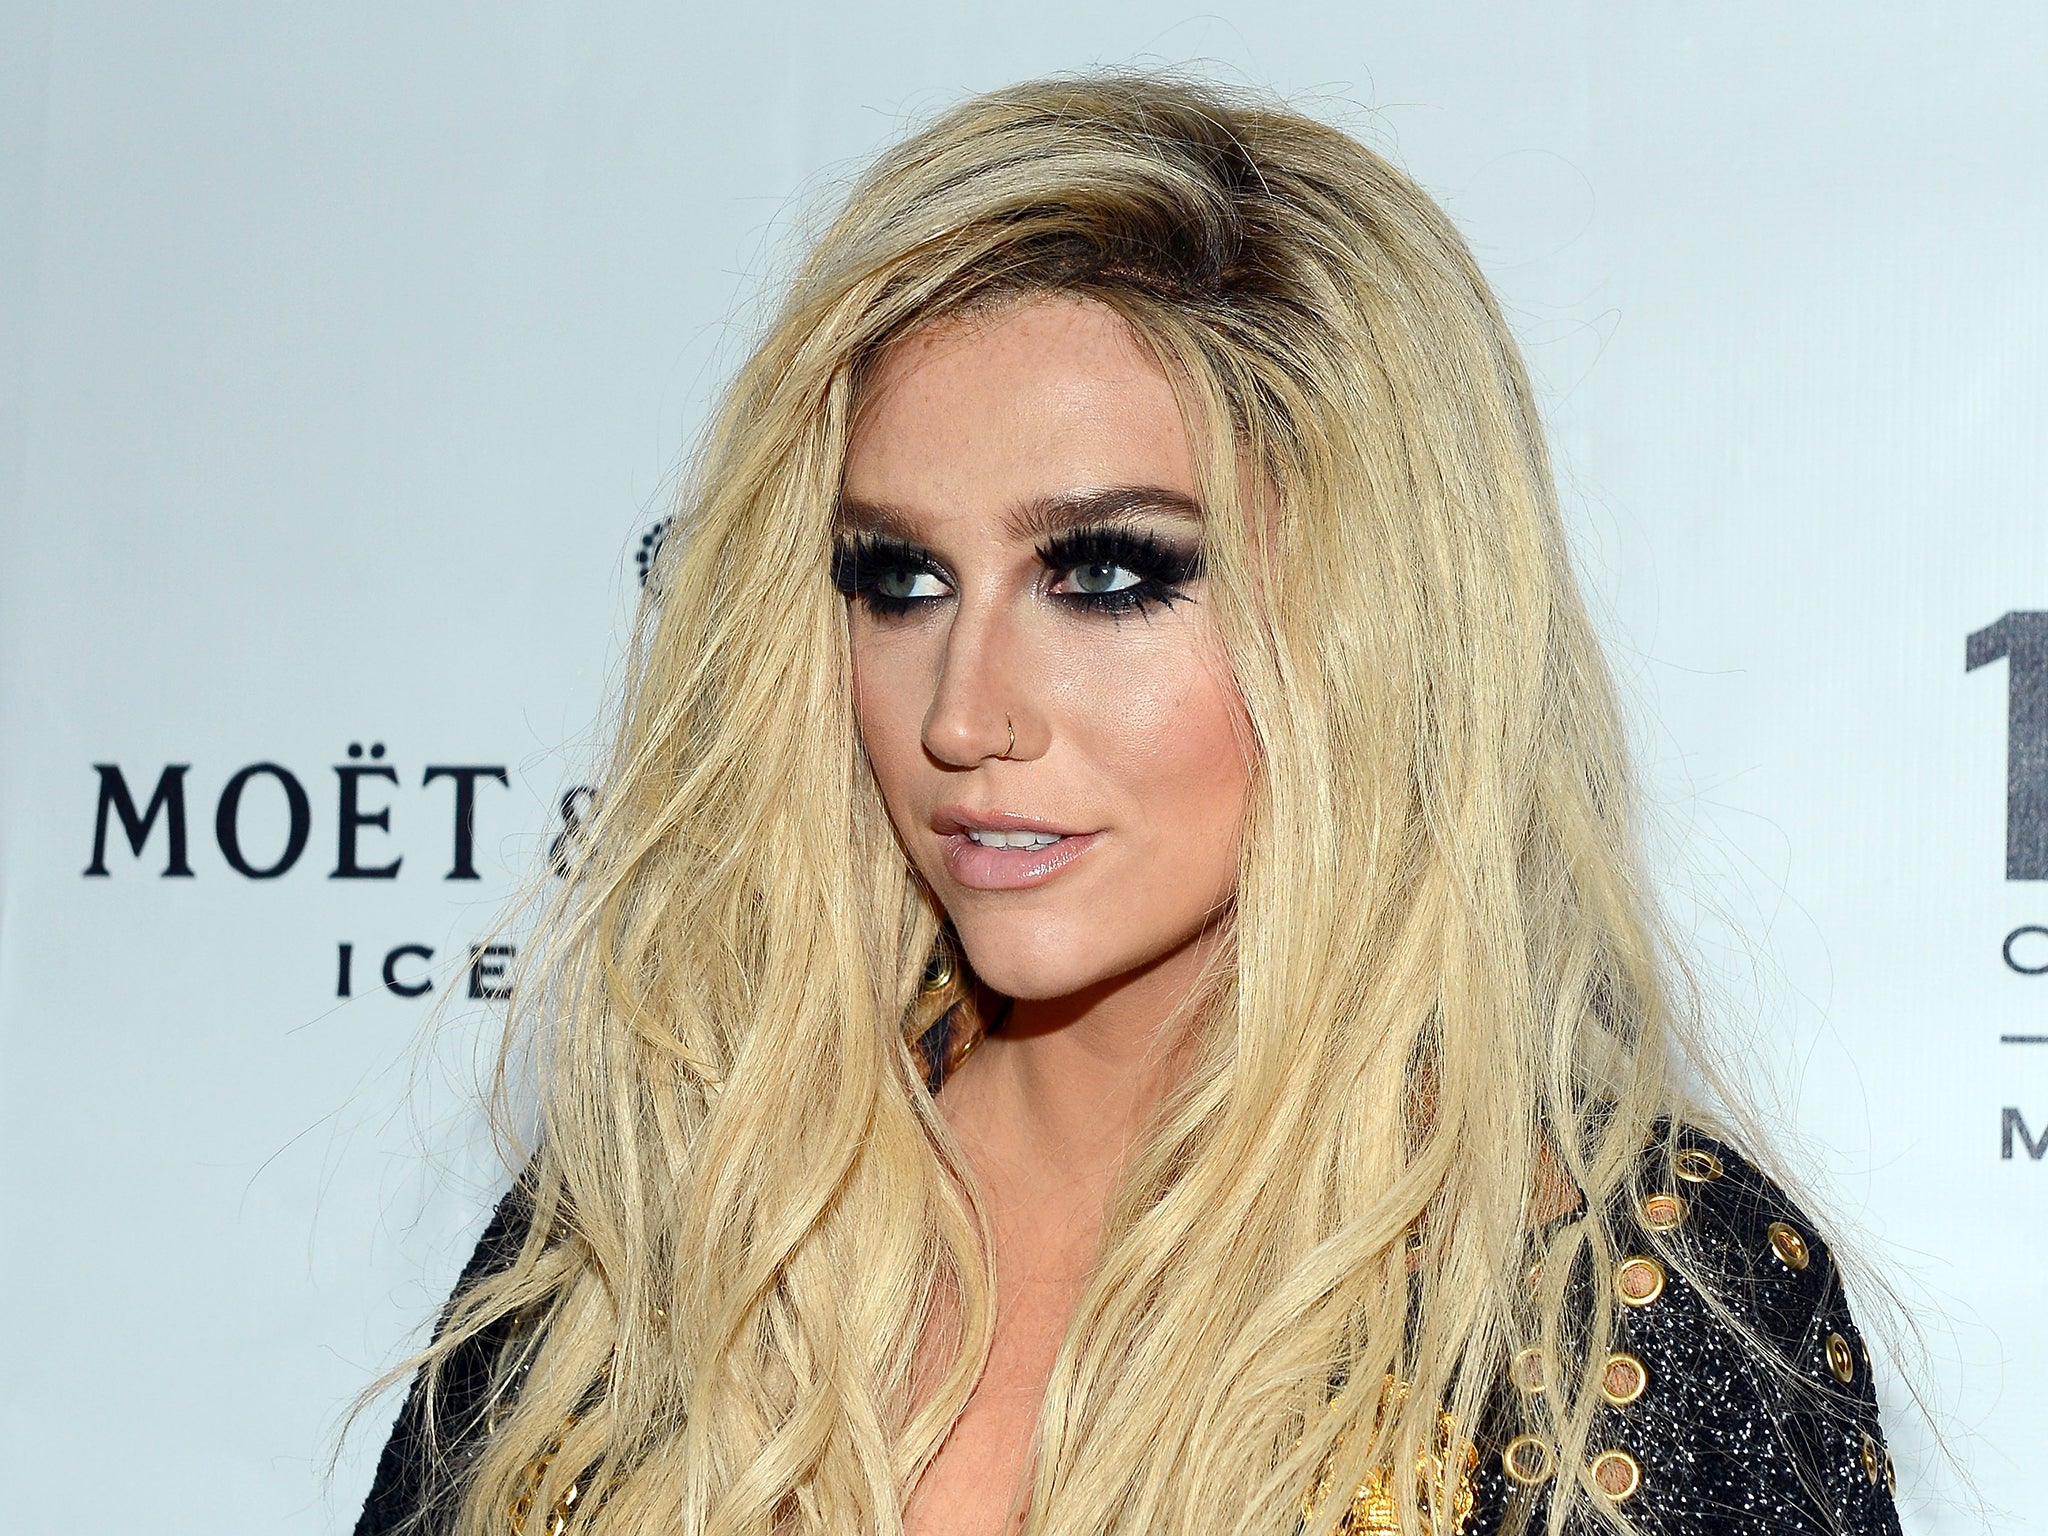 kesha accepts lgbt visibility award in nashville and says im going through some personal things the independent